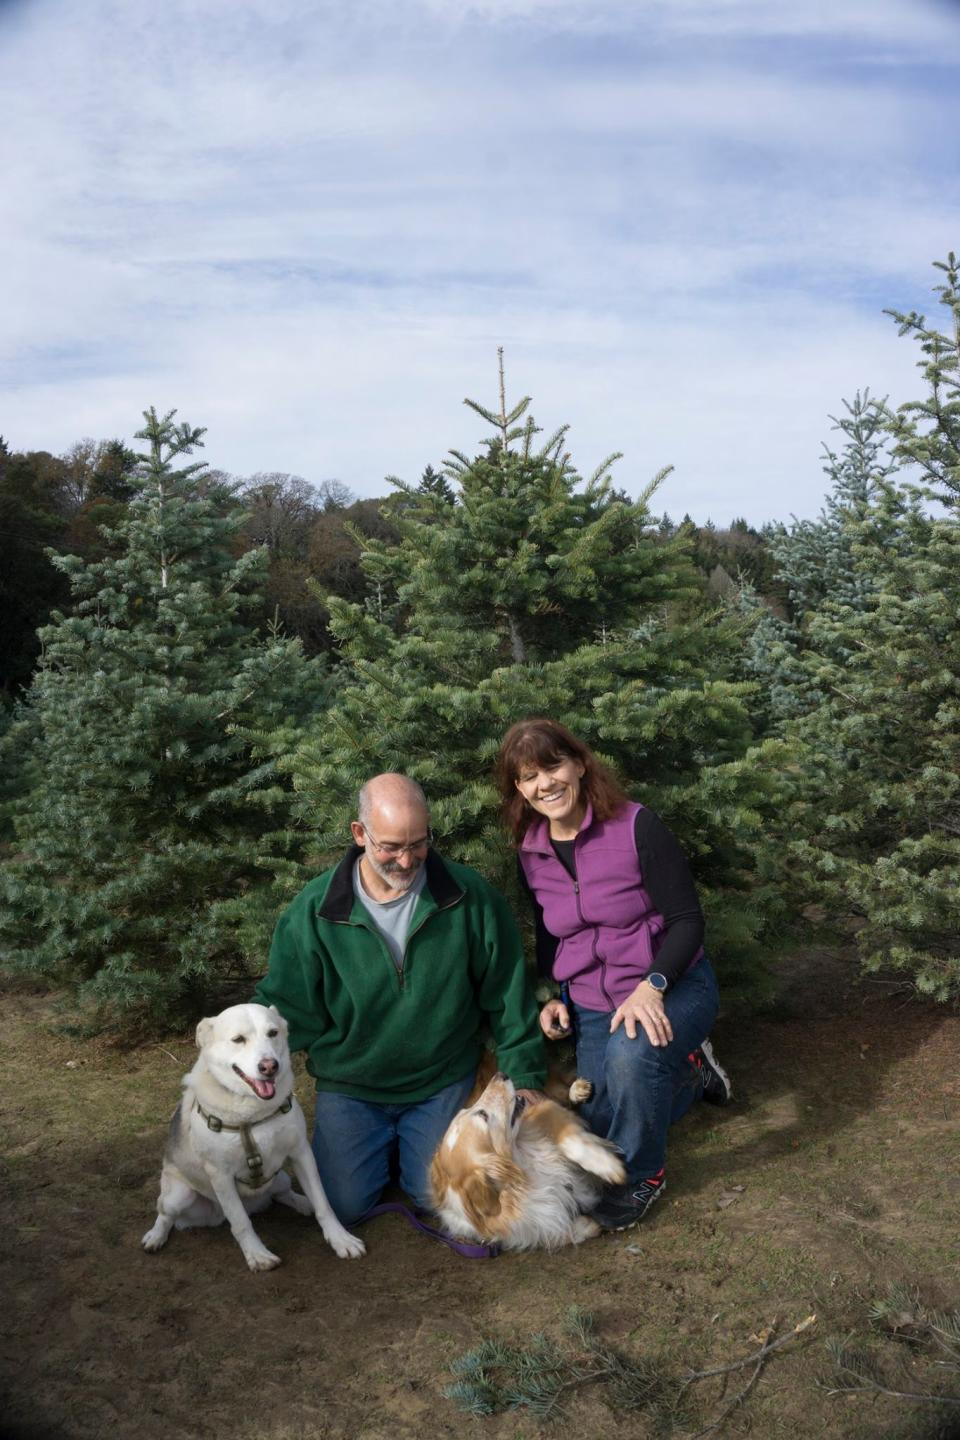 Terry Feinberg, his wife Carla Ruigh, and their rescue dogs from Chrismas 2017. The couple prefers to donate to charities instead of exchange physical gifts during Christmas. (Photo courtesy of Terry Feinberg.)